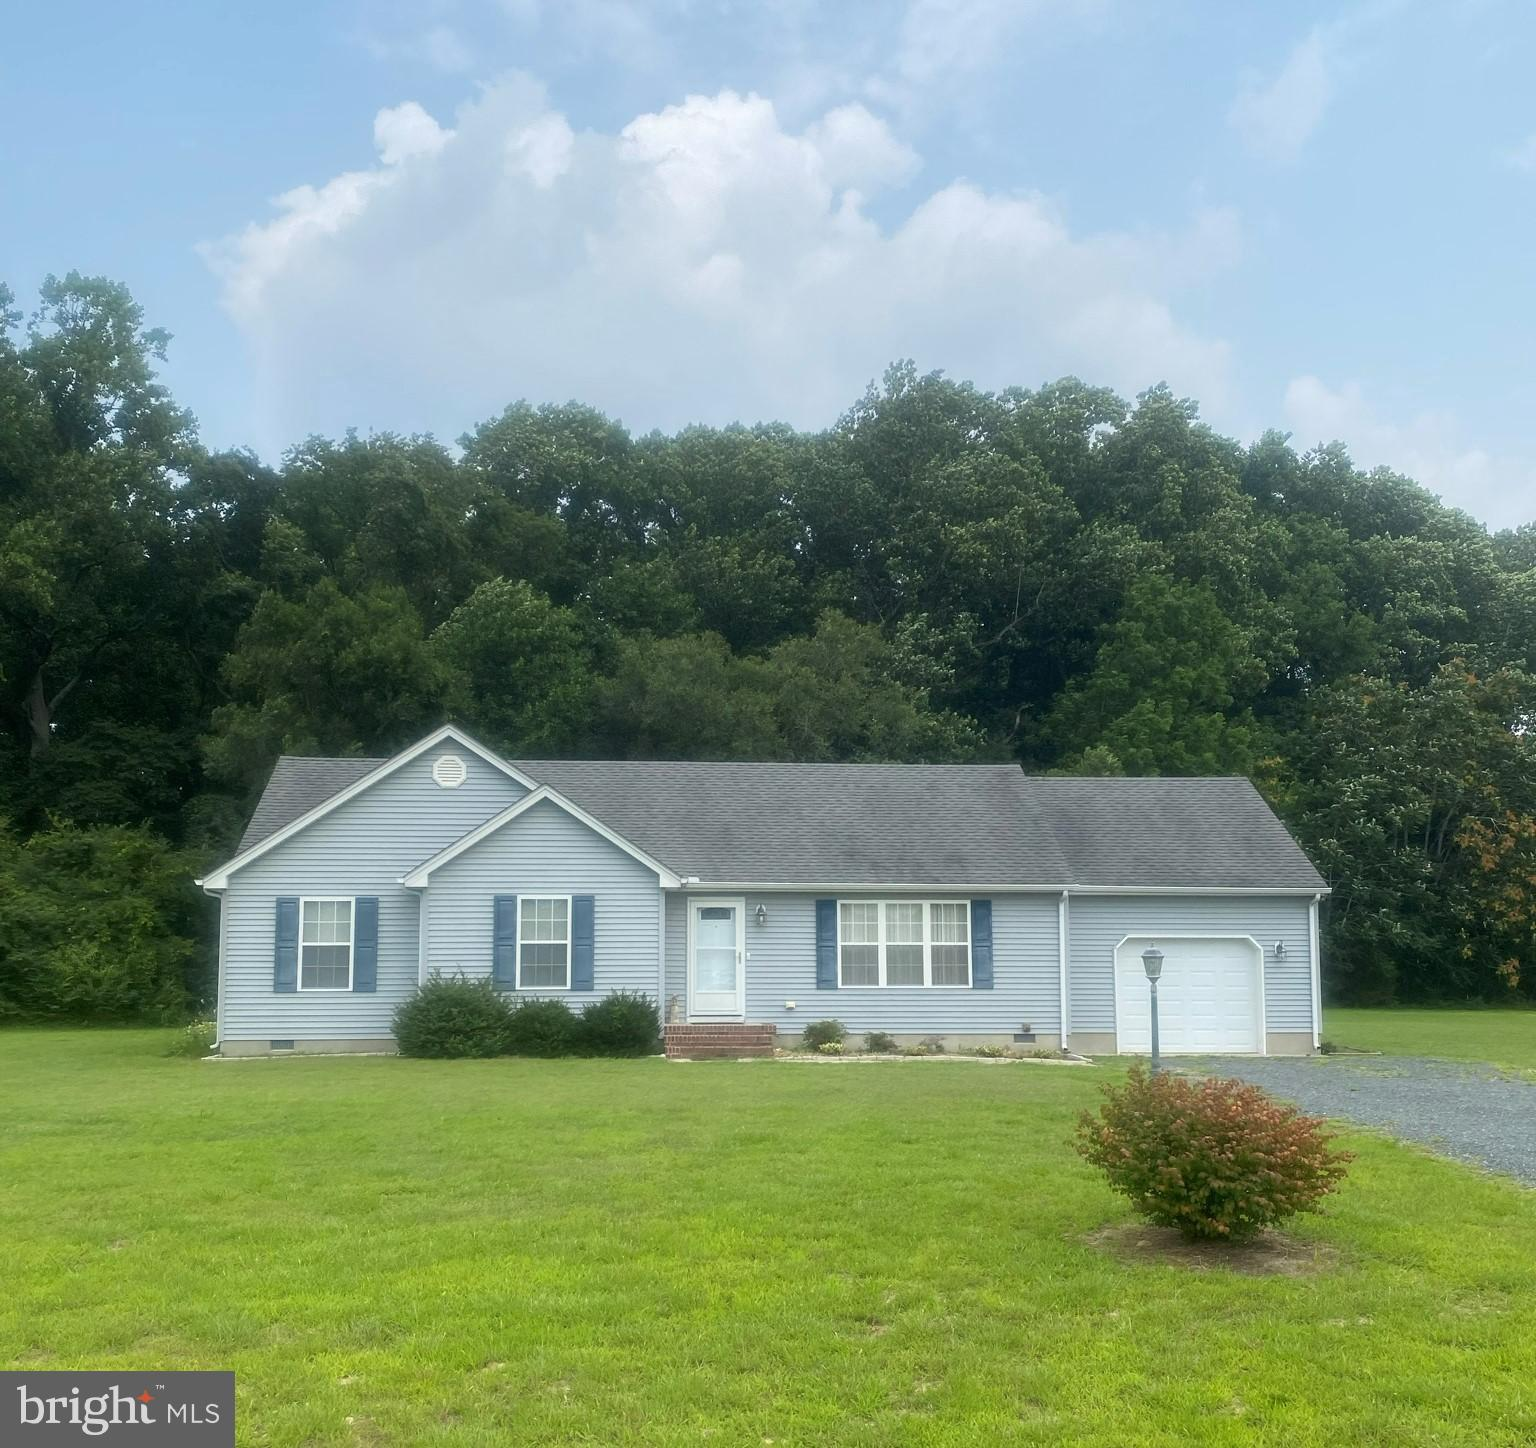 This 3 bedroom 2 bathroom home sits on a great 1.31 acre lot and features a large family room, spaci